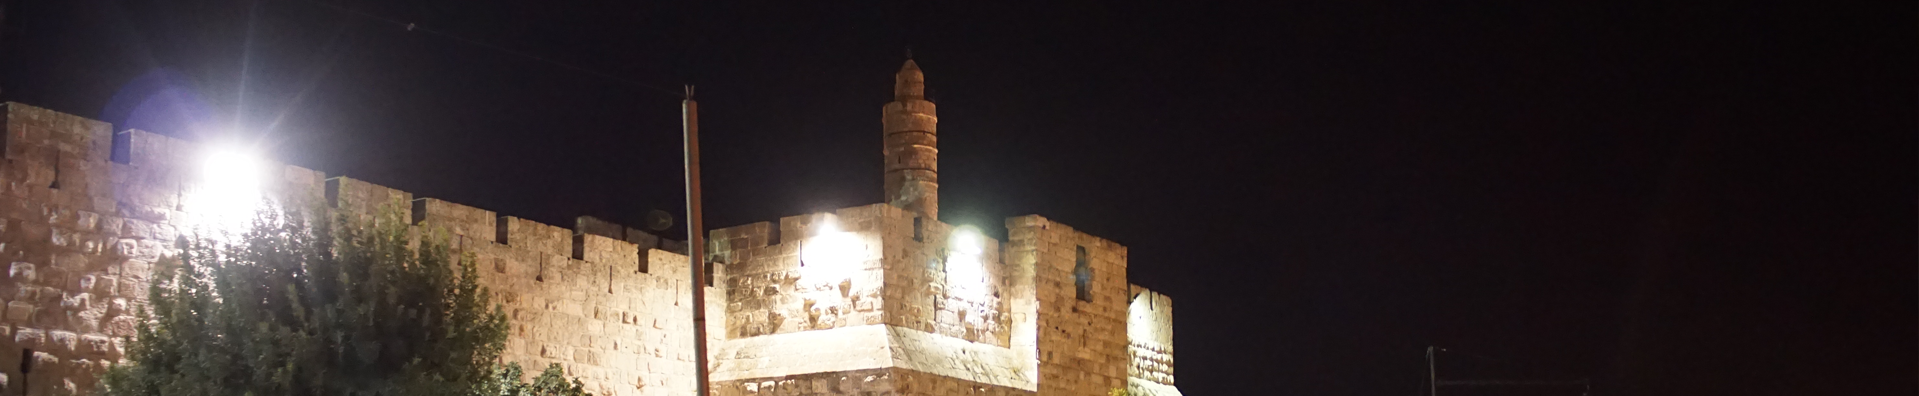 Kotel, Mur occidental